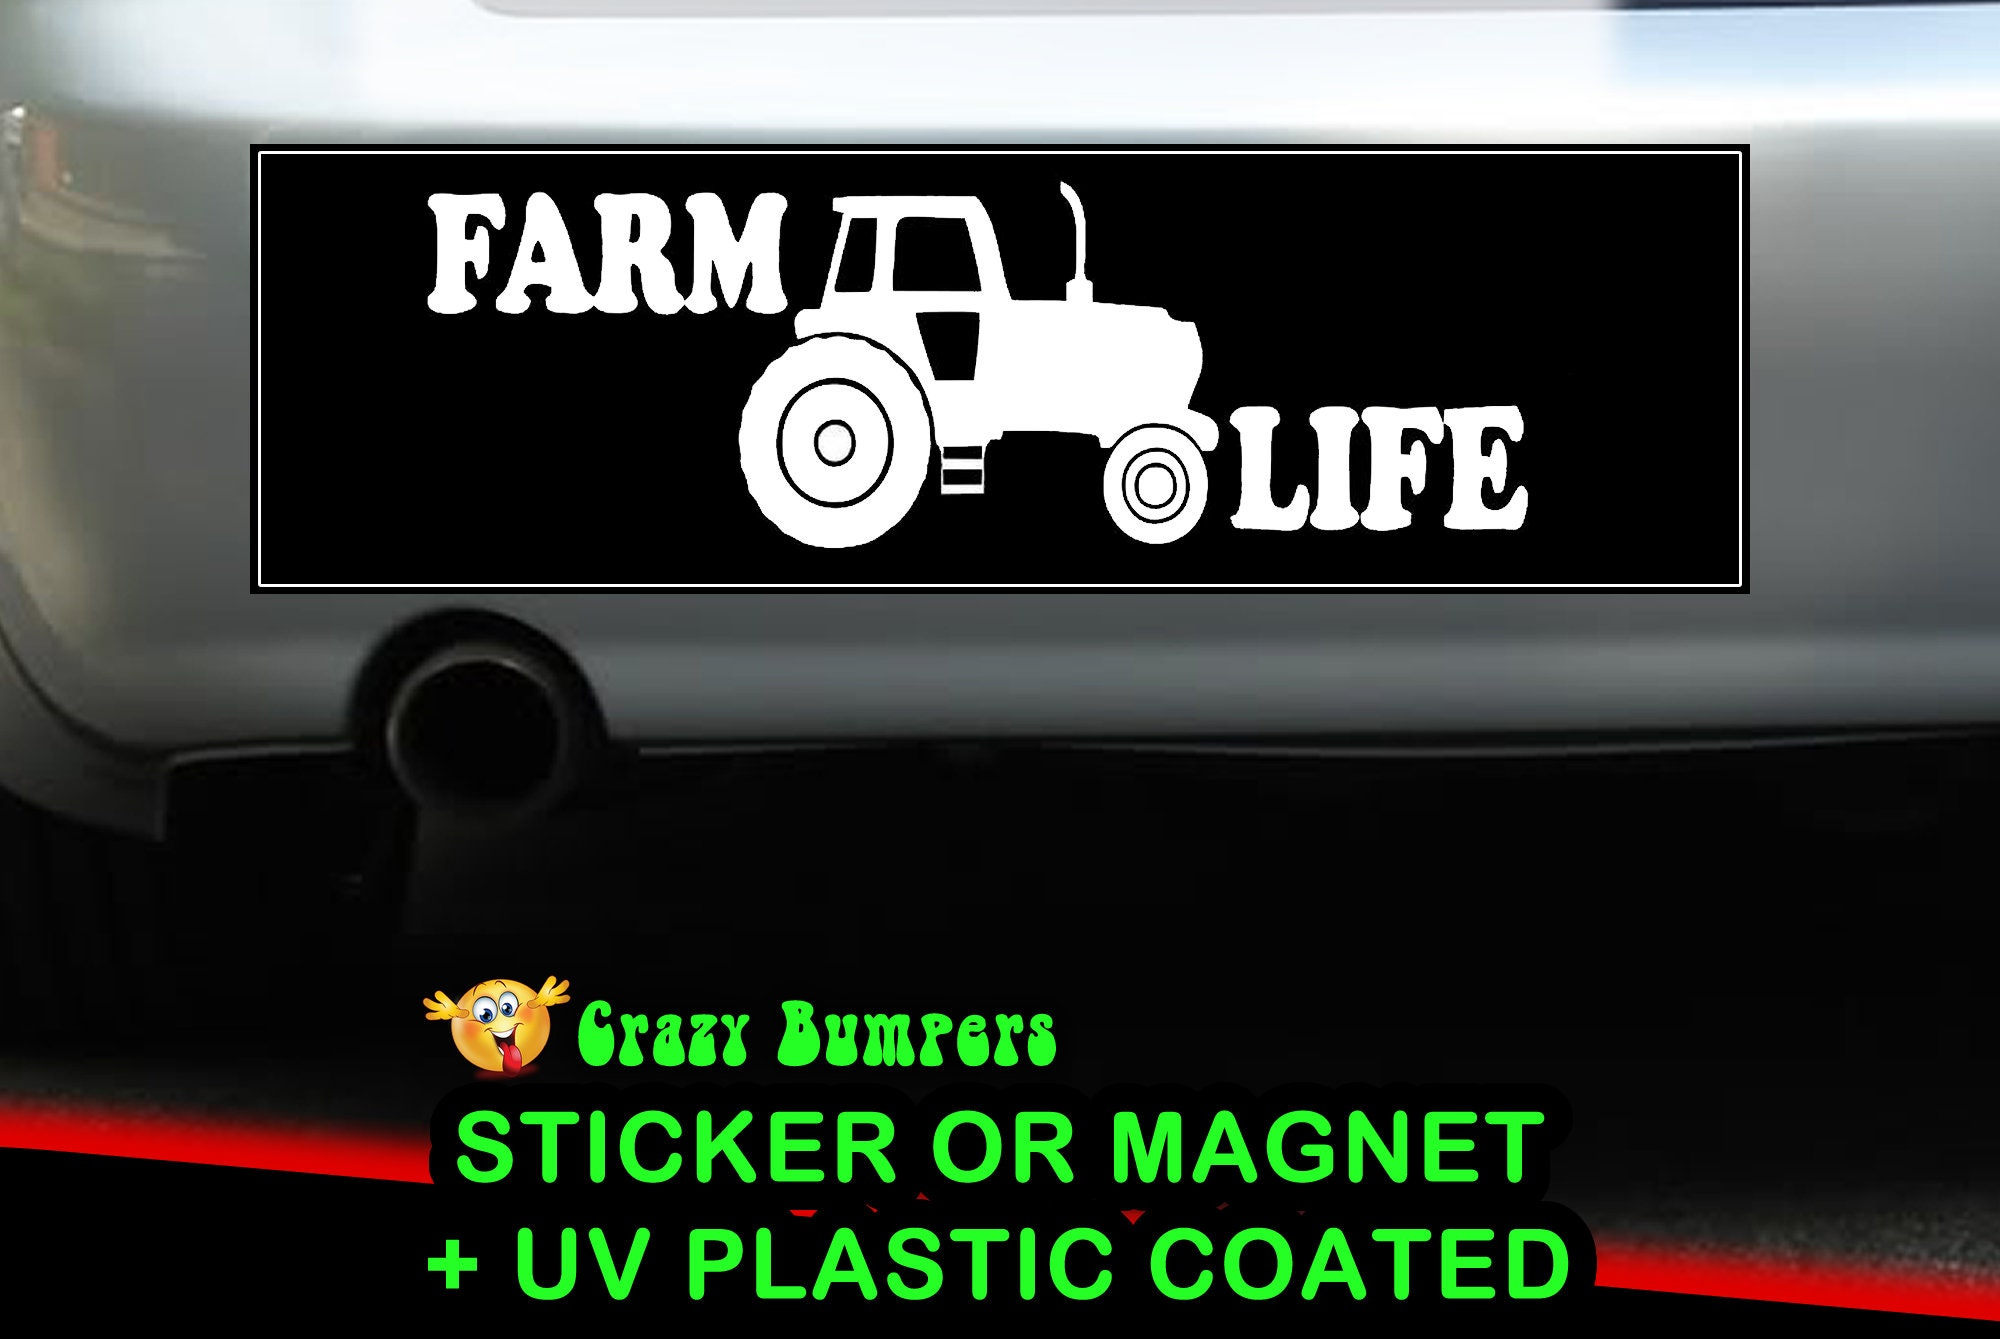 CAD$7.99 - Farm Life Sticker 10 x 3 Bumper Sticker or Magnetic Bumper Sticker Available